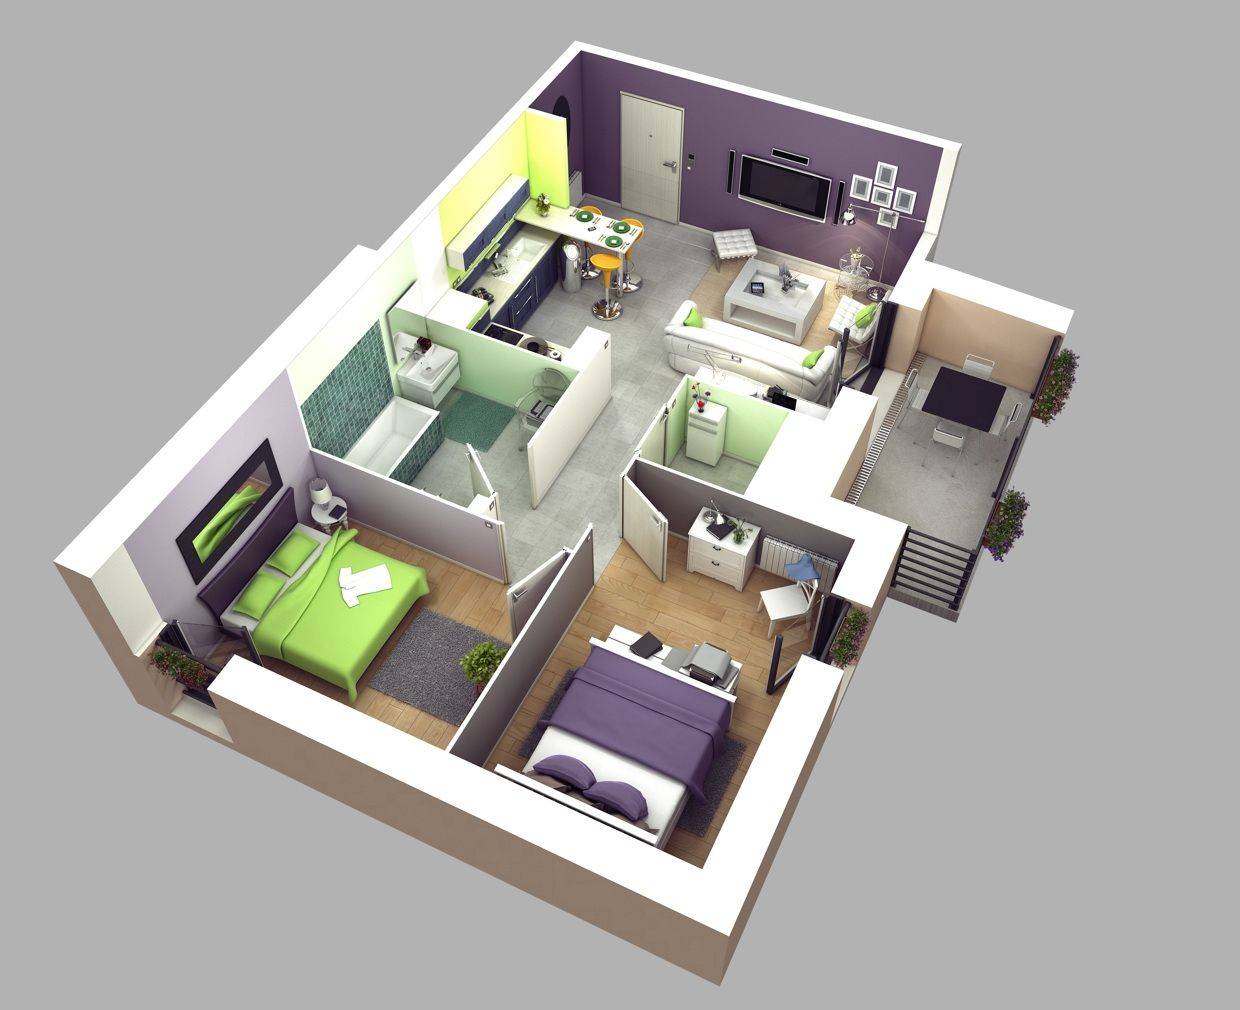 50 Two 2 Bedroom Apartment House Plans Architecture Design Two Bedroom House Design Two Bedroom House 2 Bedroom House Design